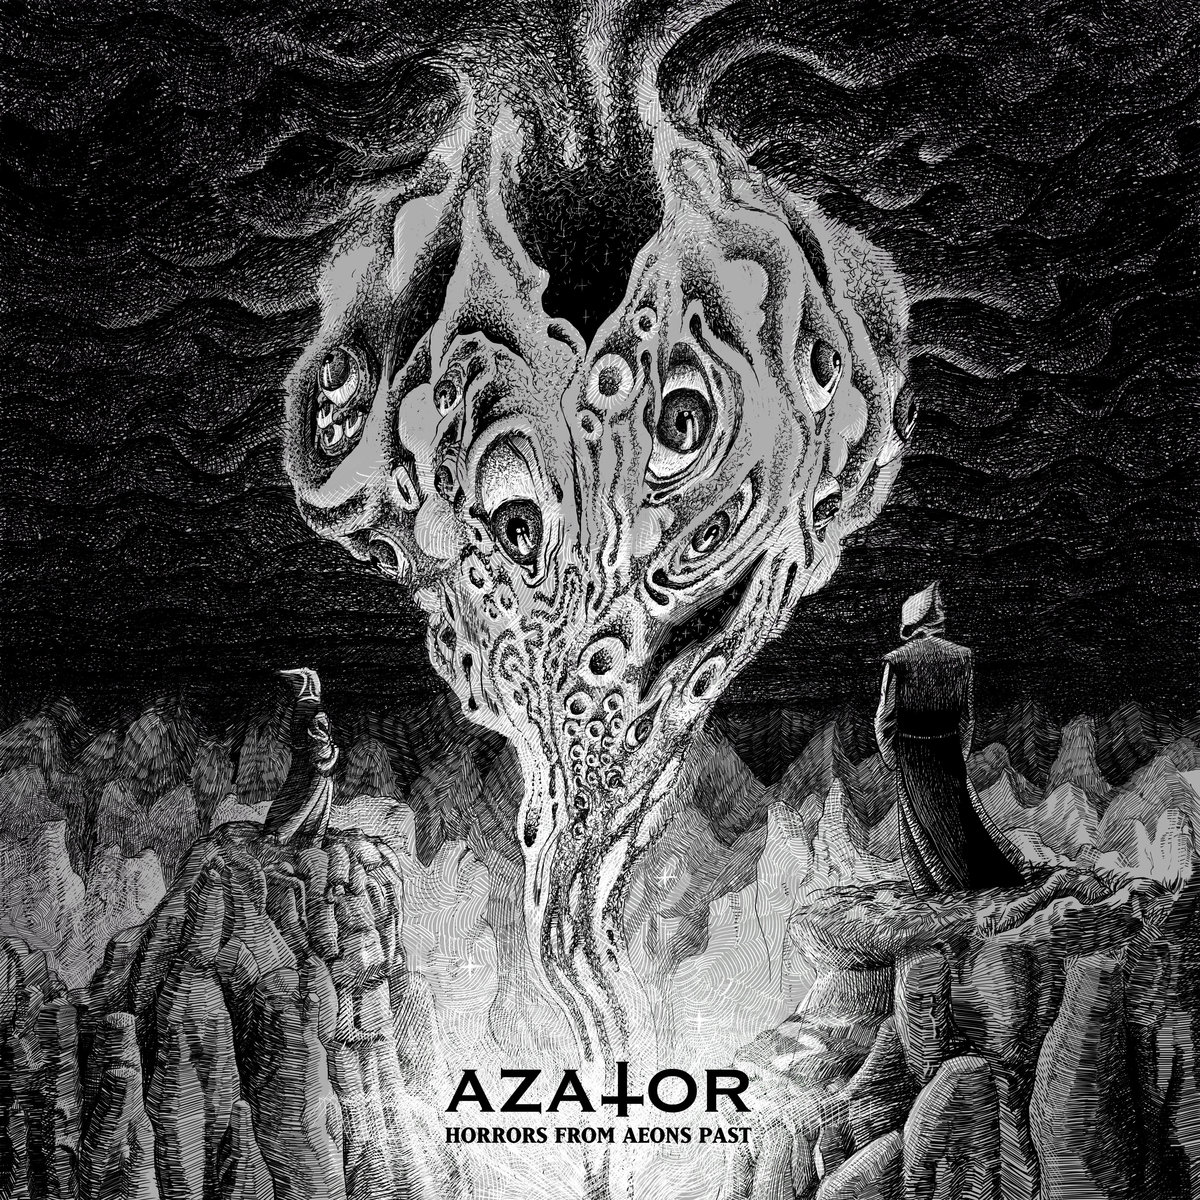 azator – horrors from aeons past [ep]